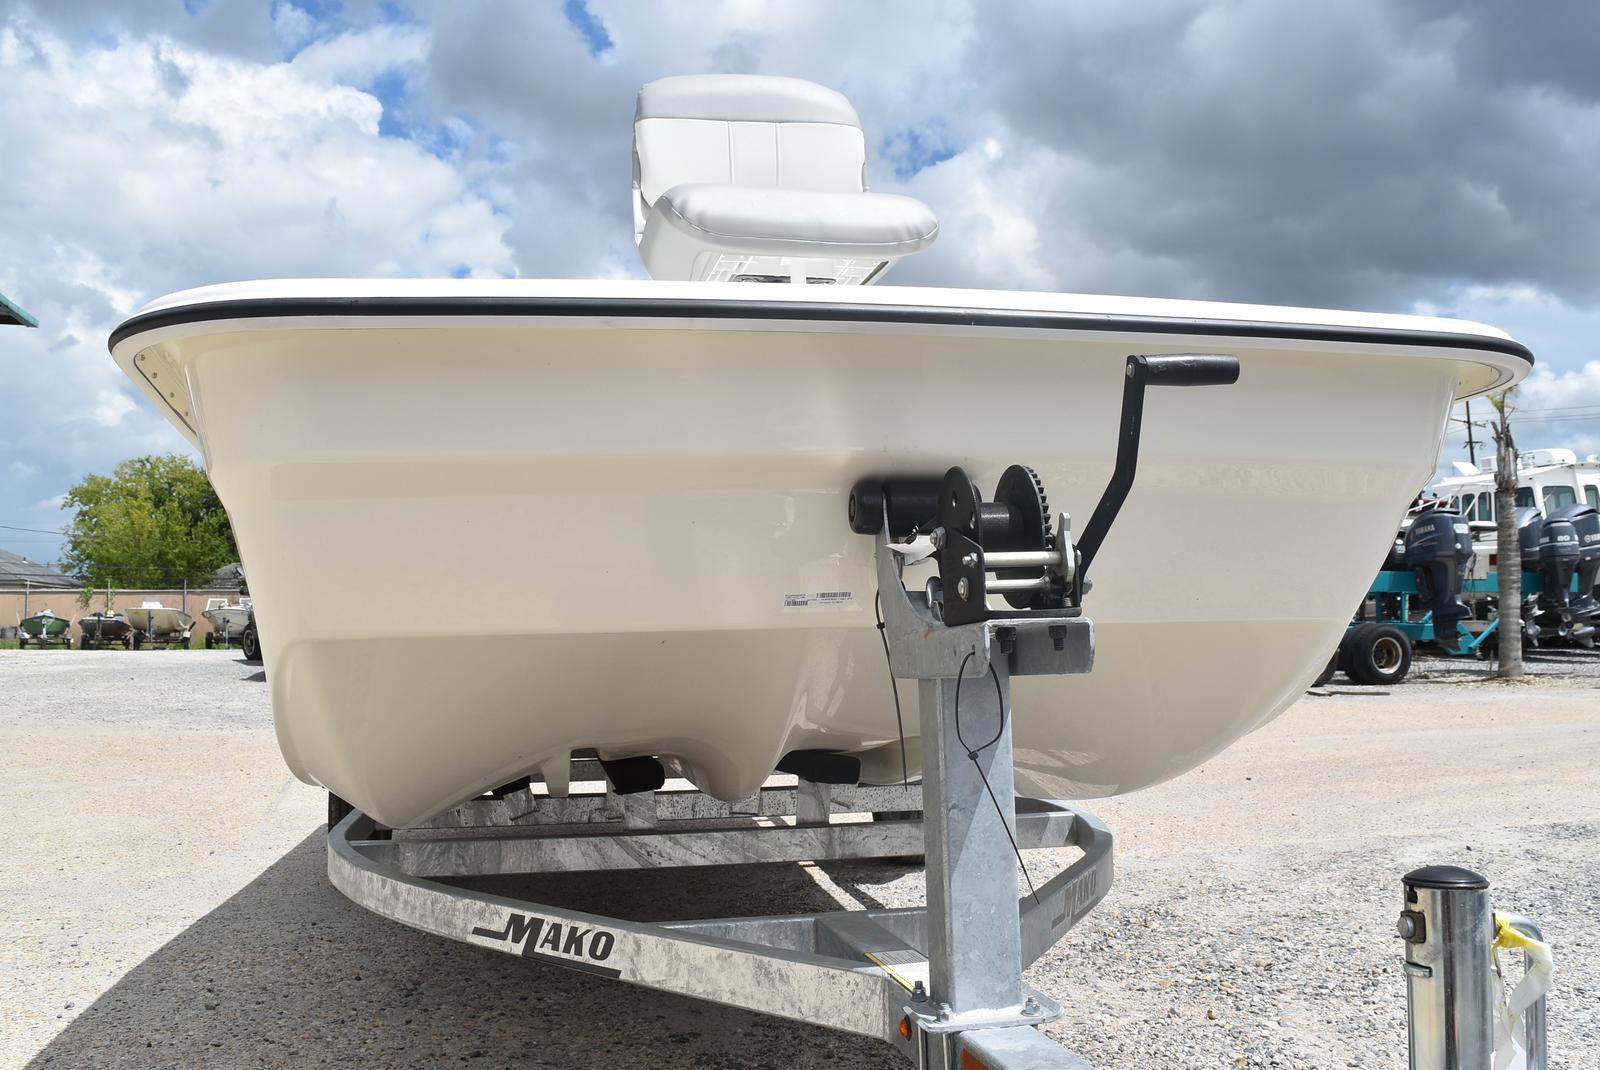 2020 Mako boat for sale, model of the boat is Pro Skiff 17, 75 ELPT & Image # 358 of 702